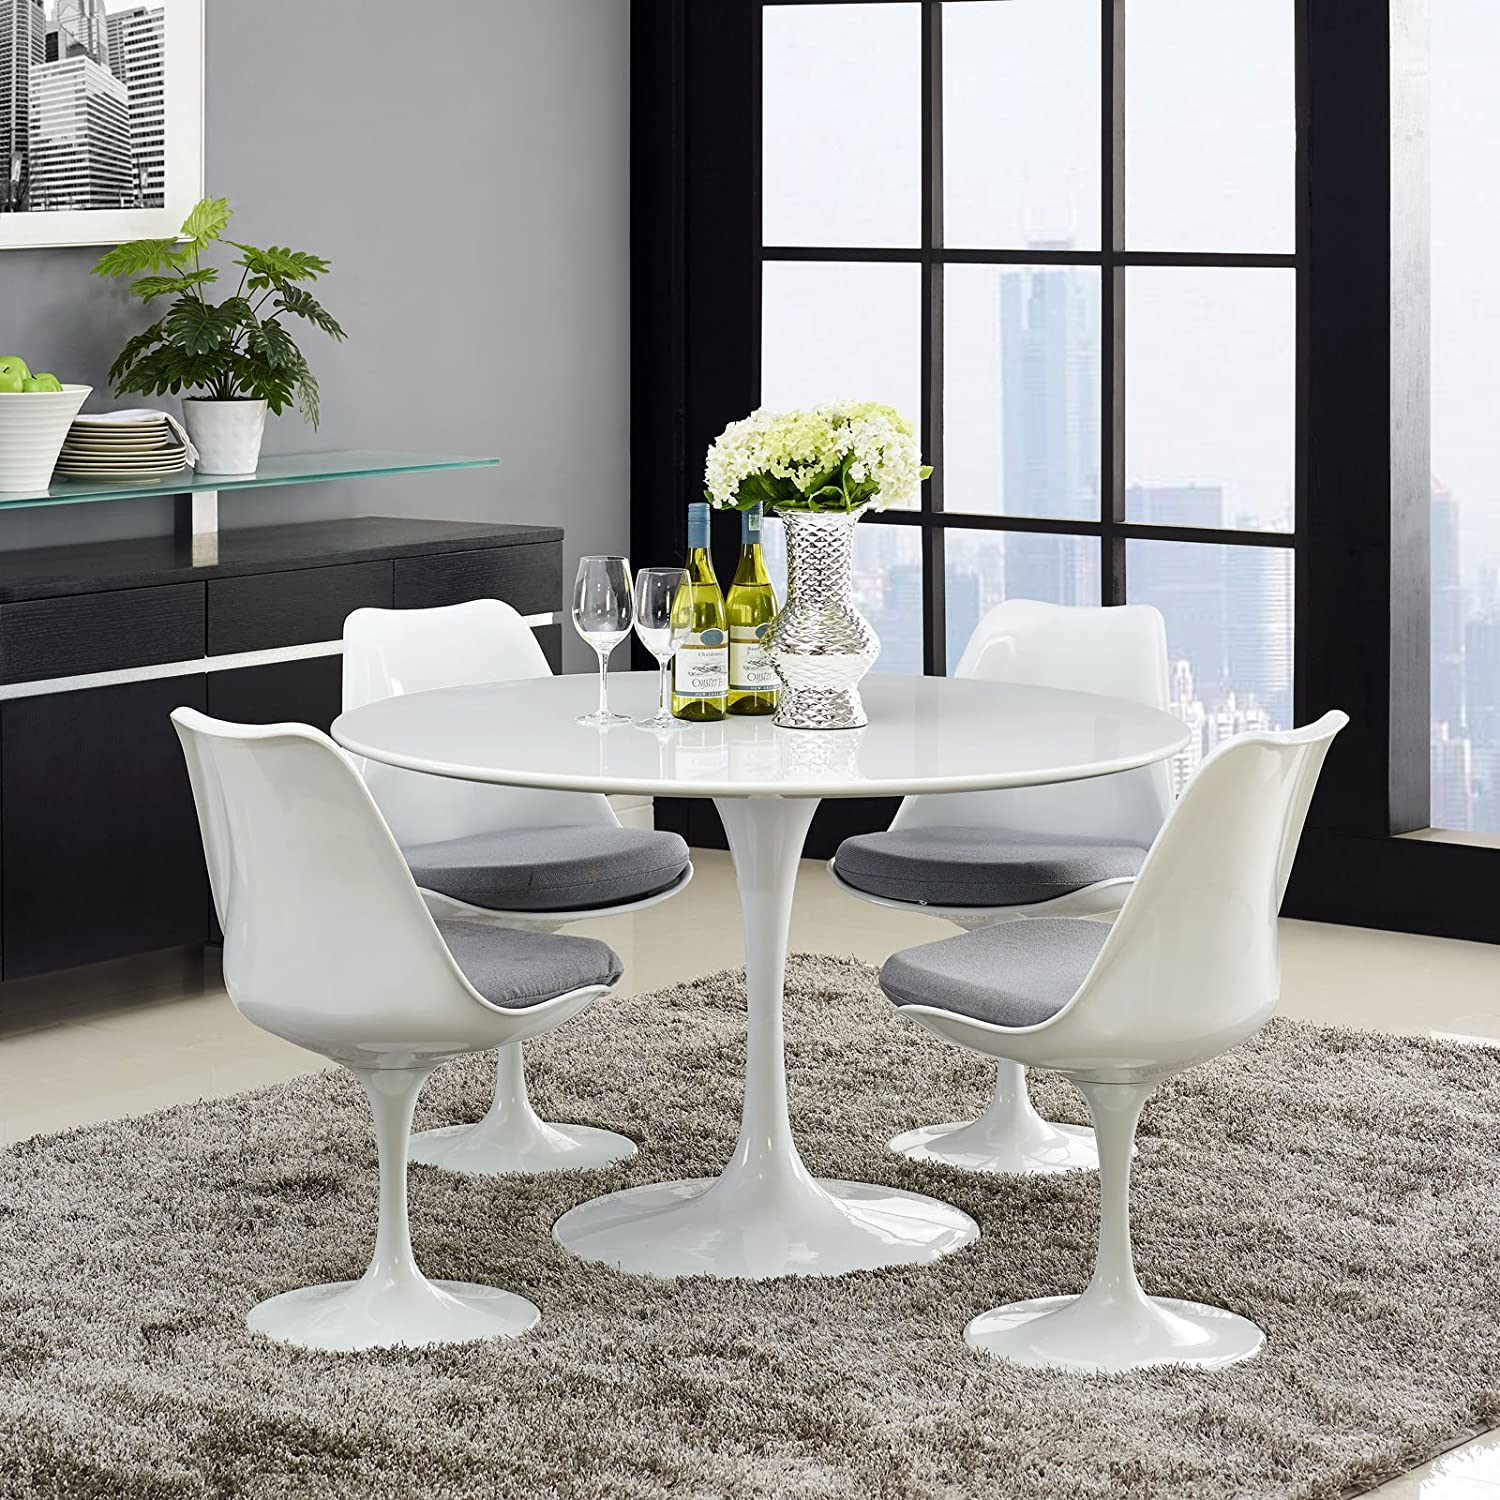 bark com kitchen marble poly daisy table tulip zfjqel and side white amazon in dining dp base